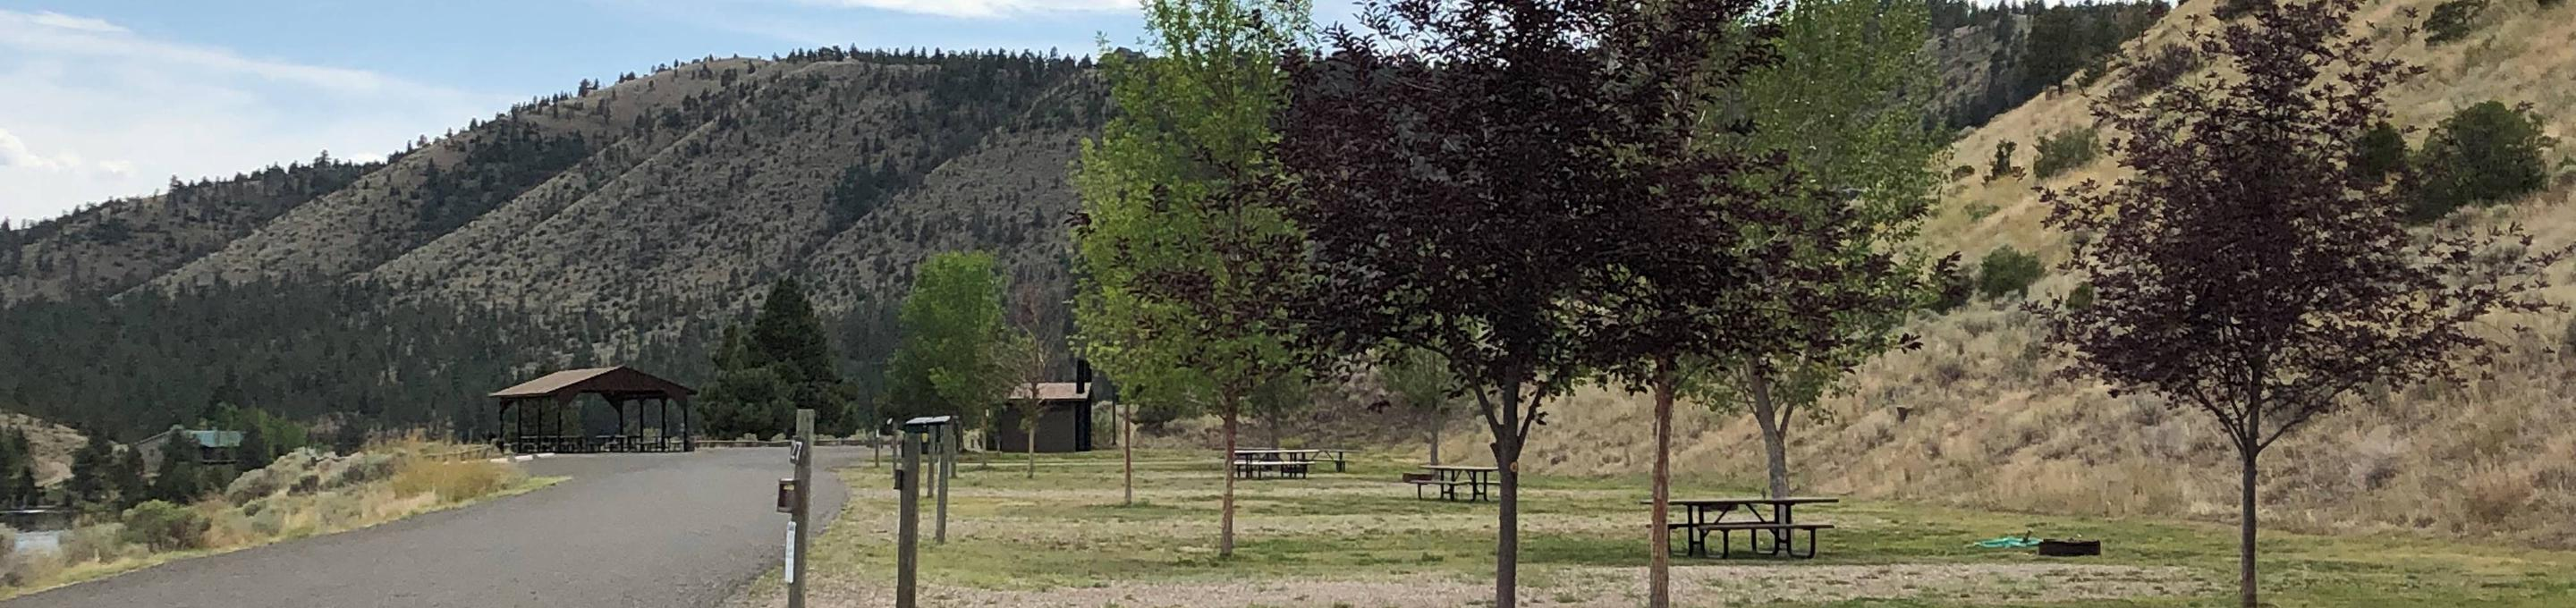 Group camping area at BLM White Sandy Campground.Group reservation campsite at BLM White Sandy Campground.